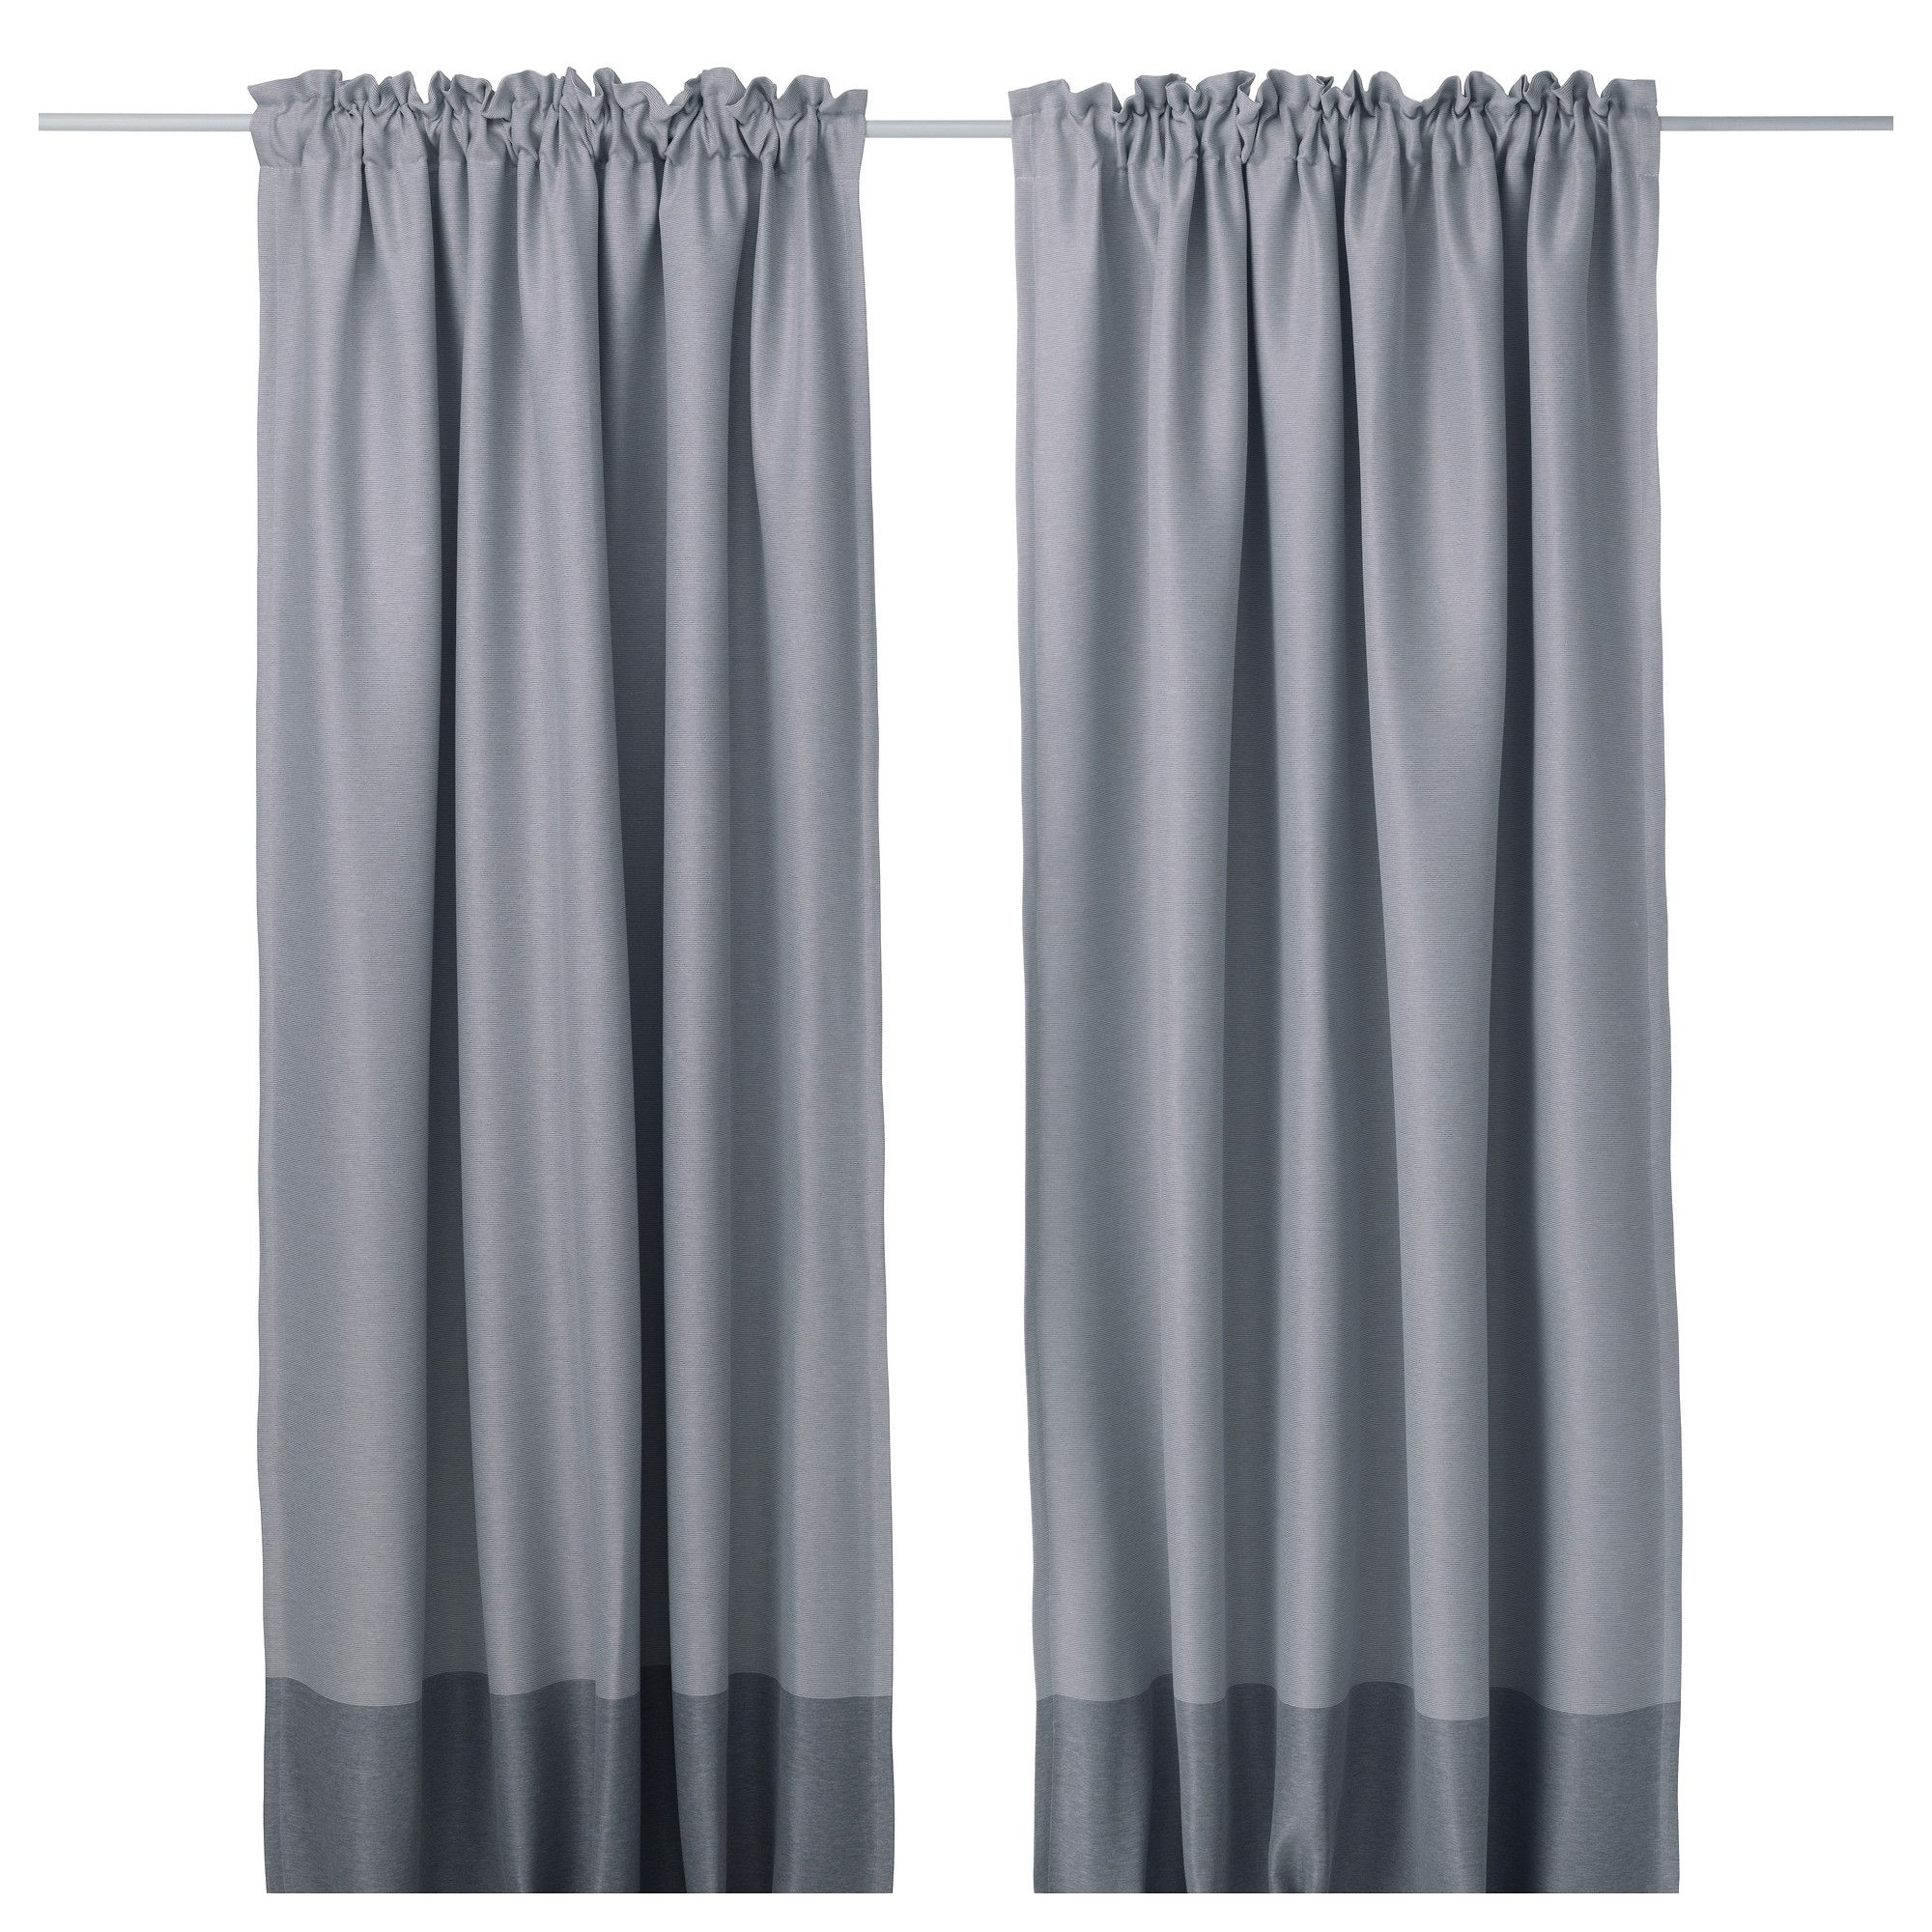 Marjun Blackout Curtains 1 Pair Ikea Within Thick Grey Curtains (Image 11 of 15)